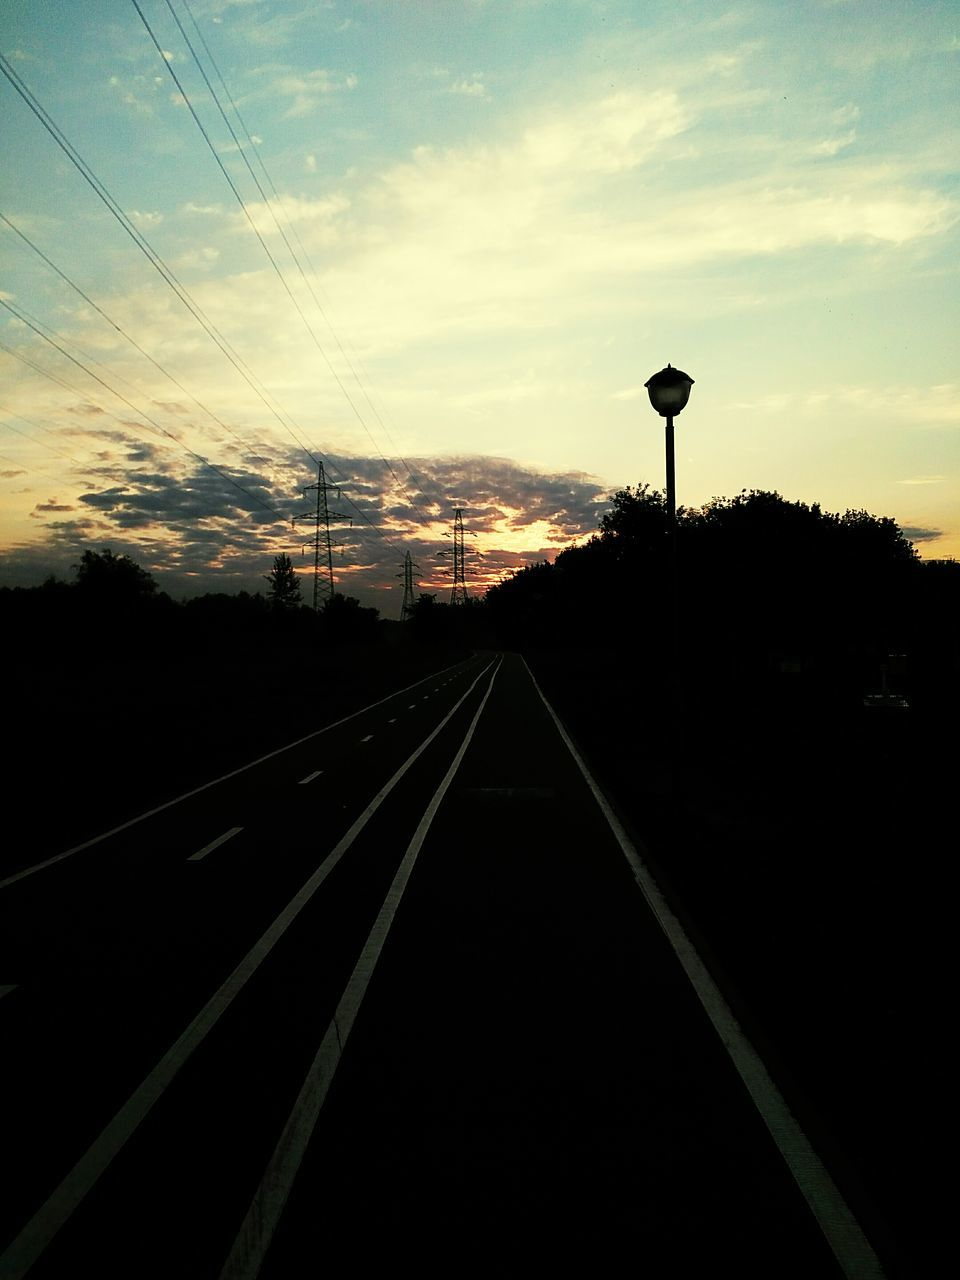 transportation, railroad track, silhouette, rail transportation, sunset, diminishing perspective, no people, sky, the way forward, cable, cloud - sky, straight, nature, outdoors, day, electricity pylon